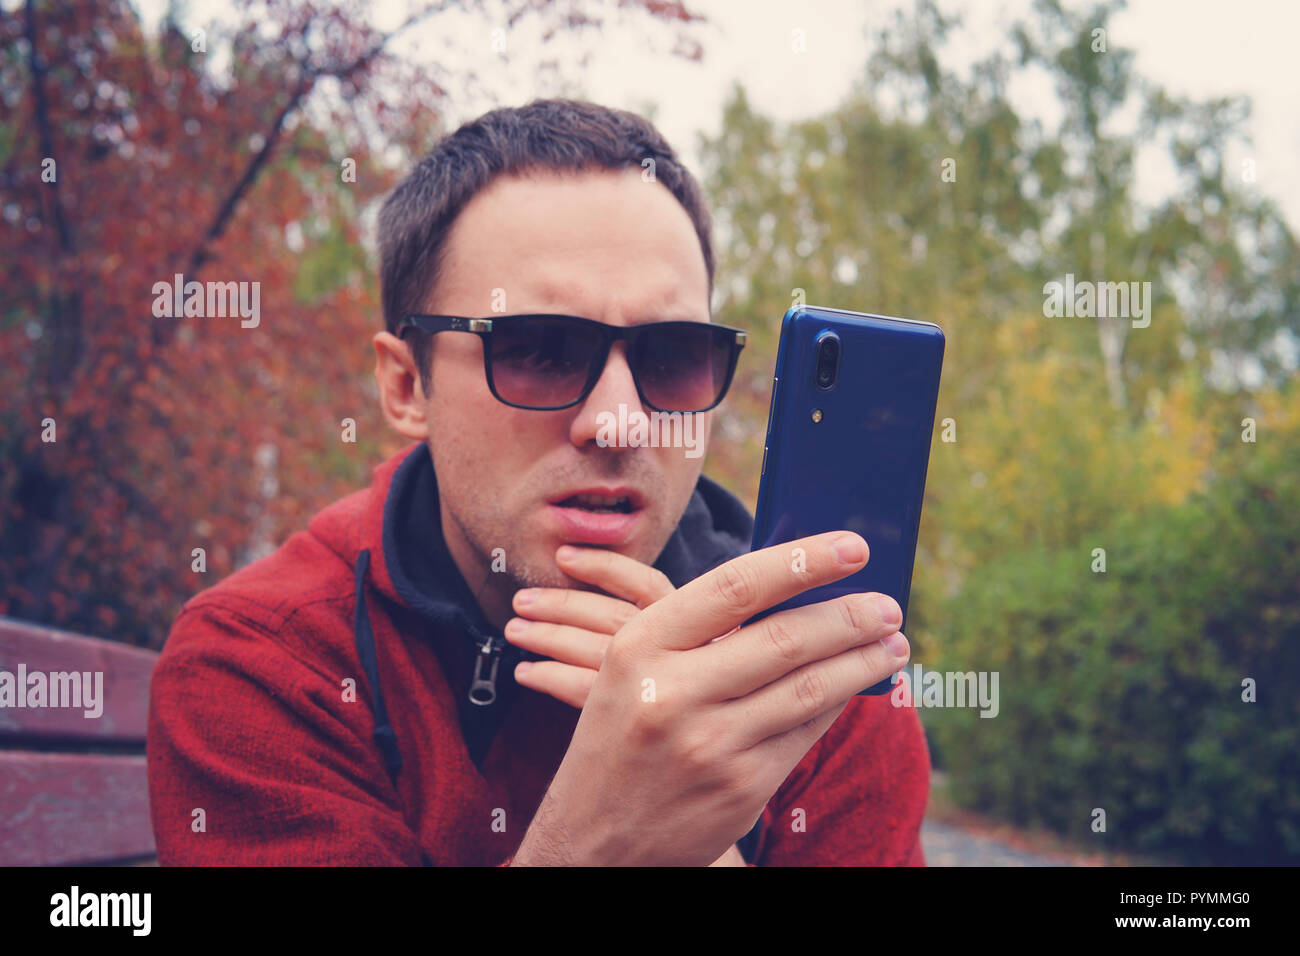 young man in wearing sunglasses holds a modern blue smartphone in his hand and look at the screen with a surprised look. Bewilderment on the face. The - Stock Image